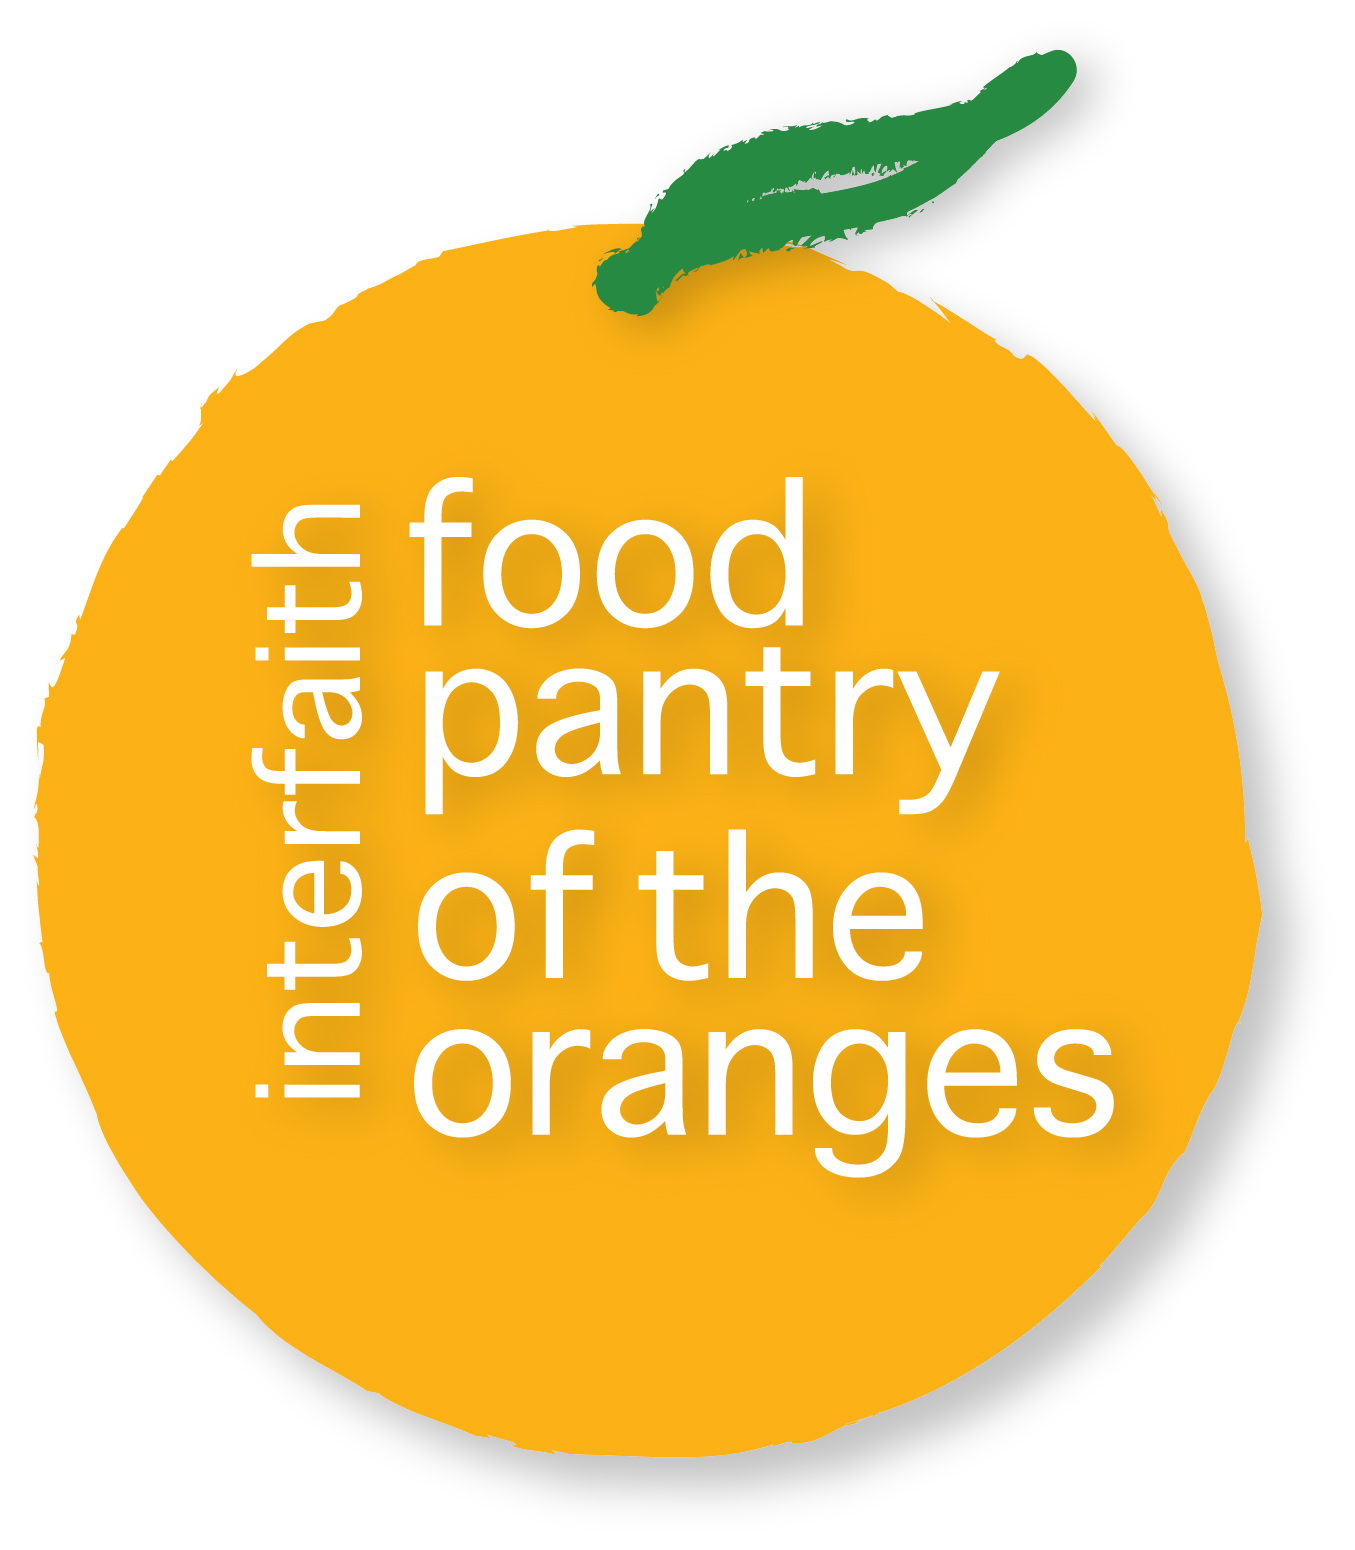 Interfaith Food Pantry of the Oranges